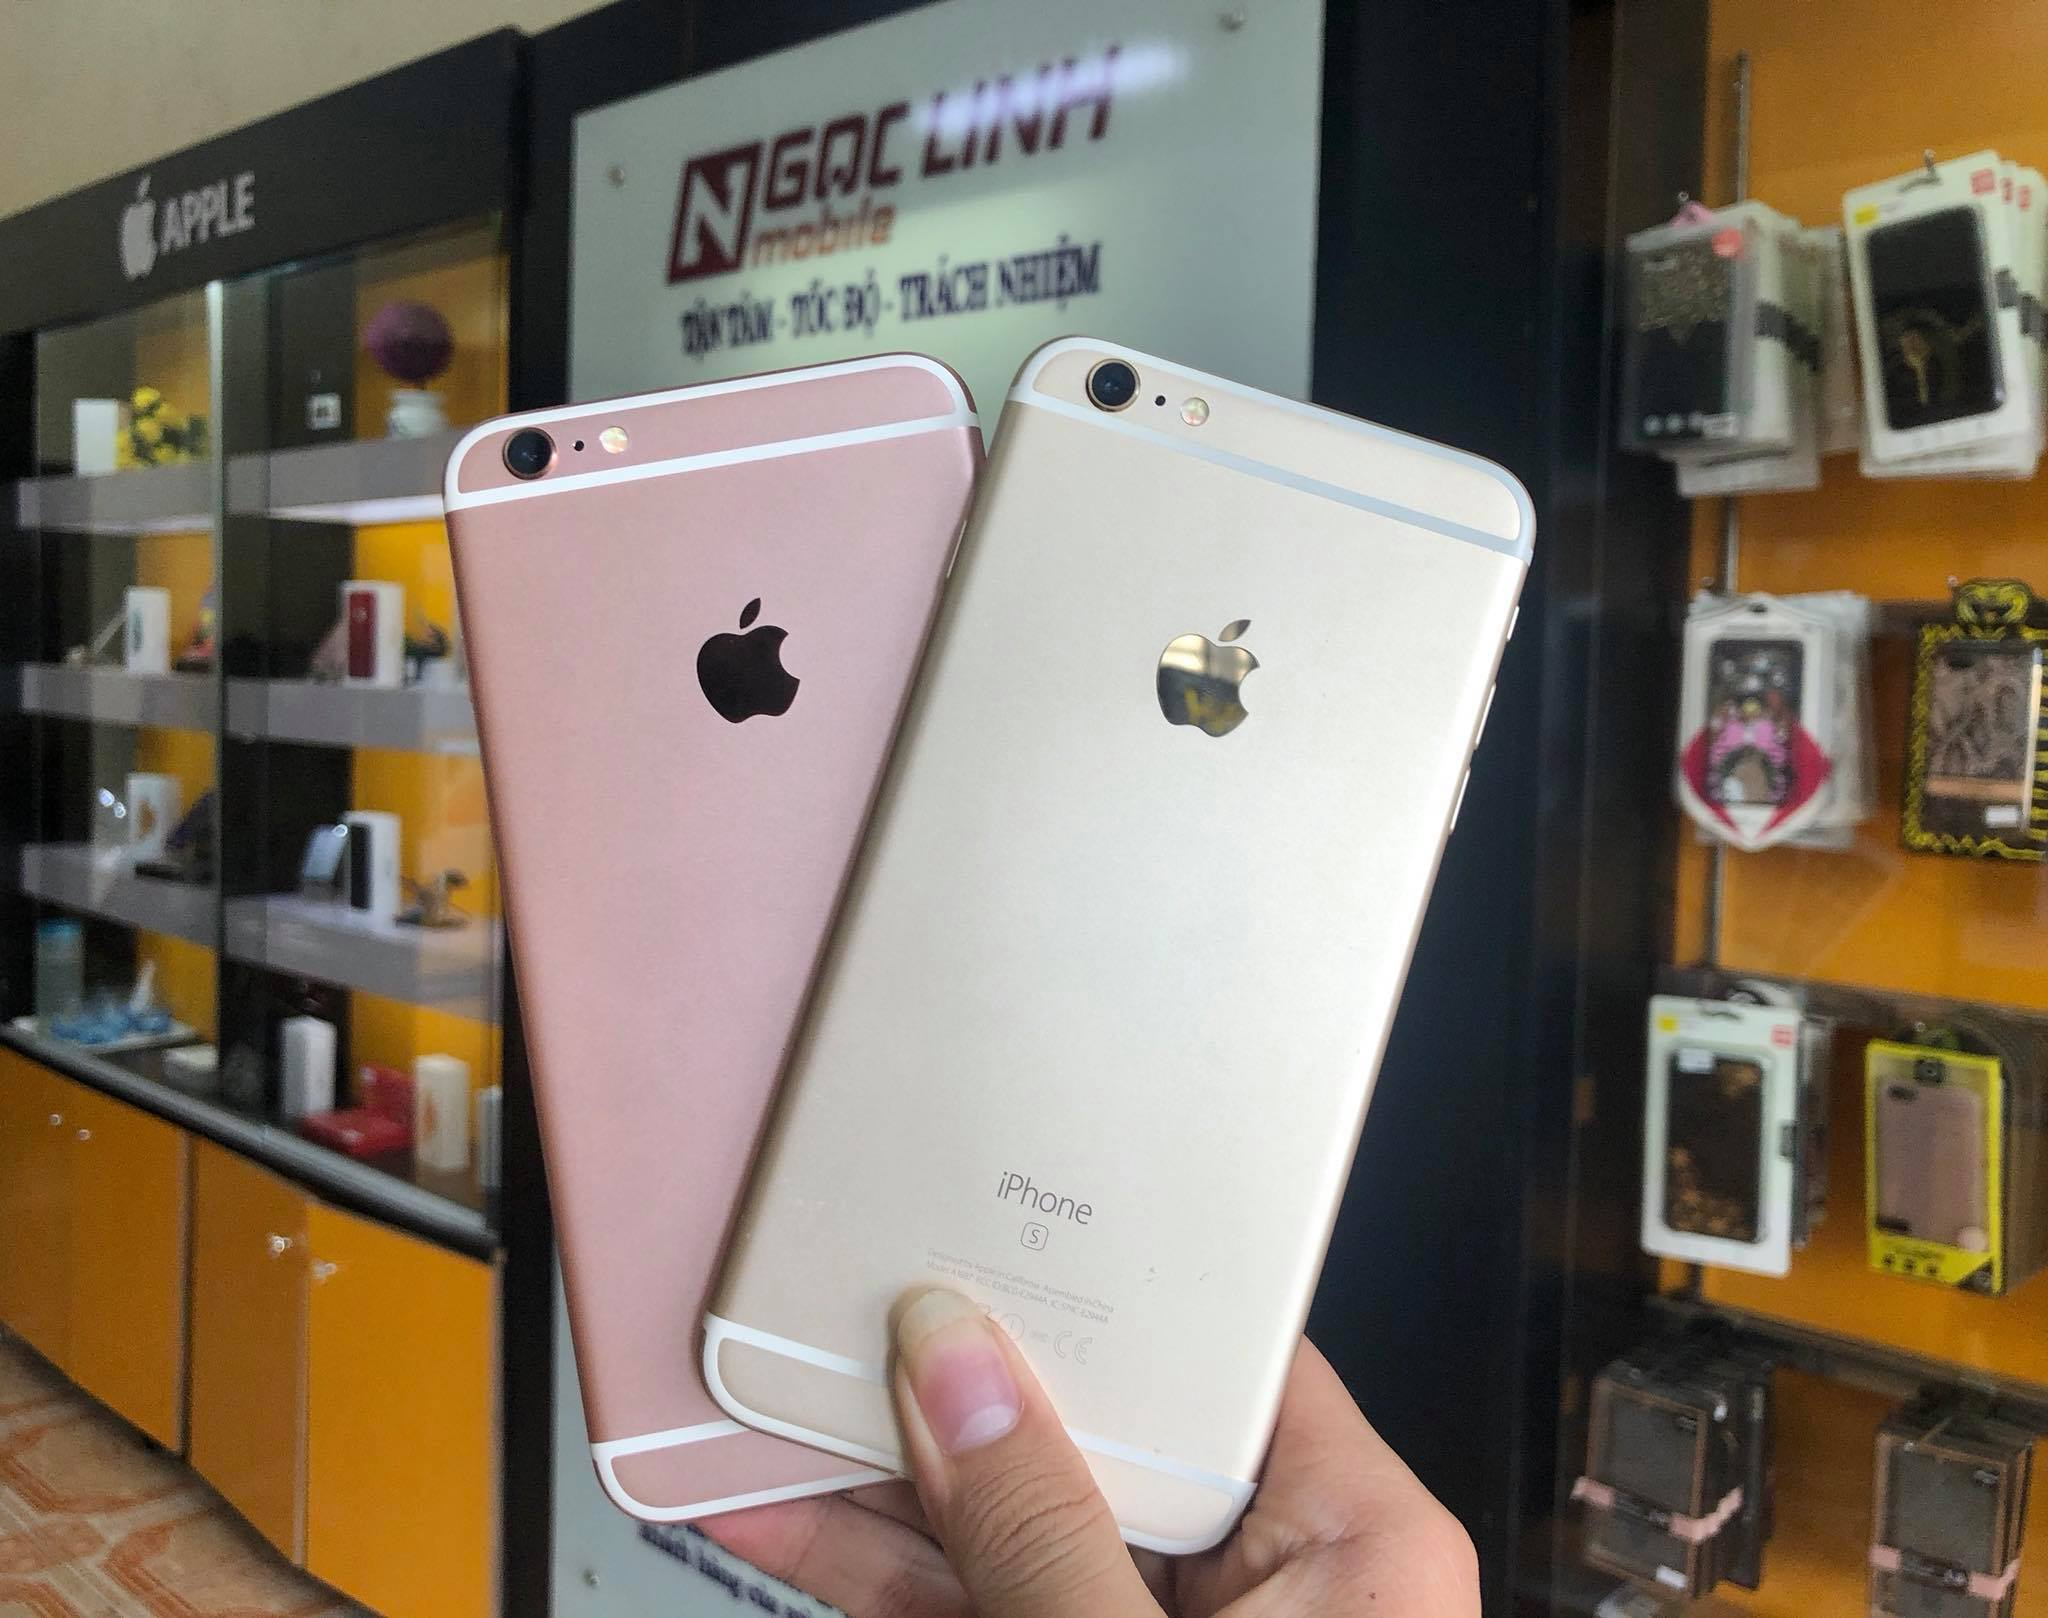 iPhone 6s Plus 16GB, iphone hàng lướt  - iPhone 6s Plus 16GB